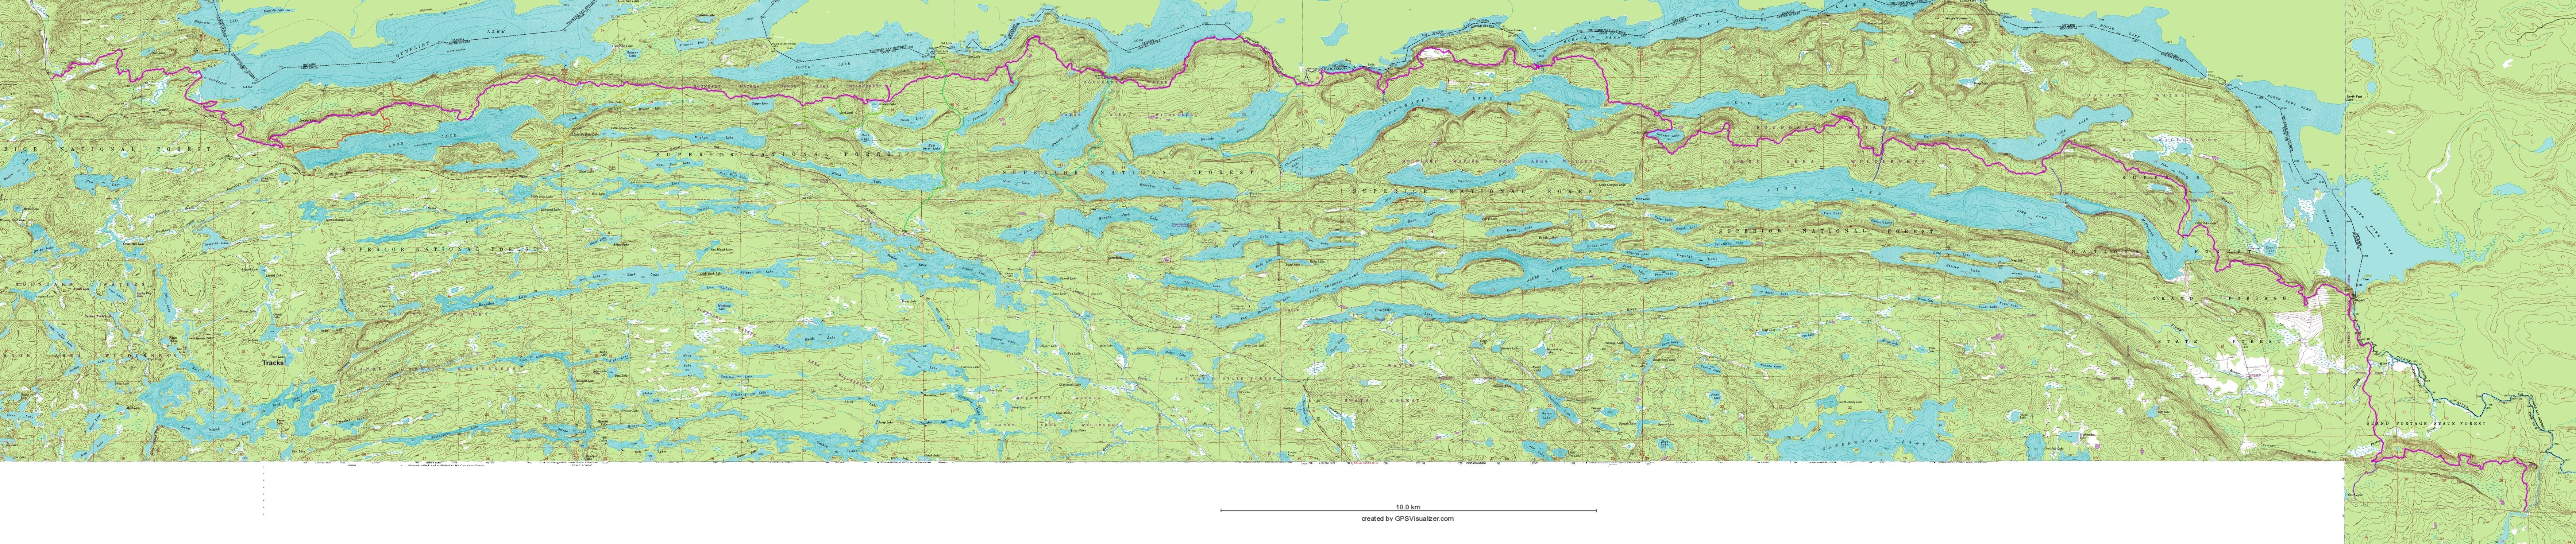 this map is not suitable for navigation purposes. border route trail  maps